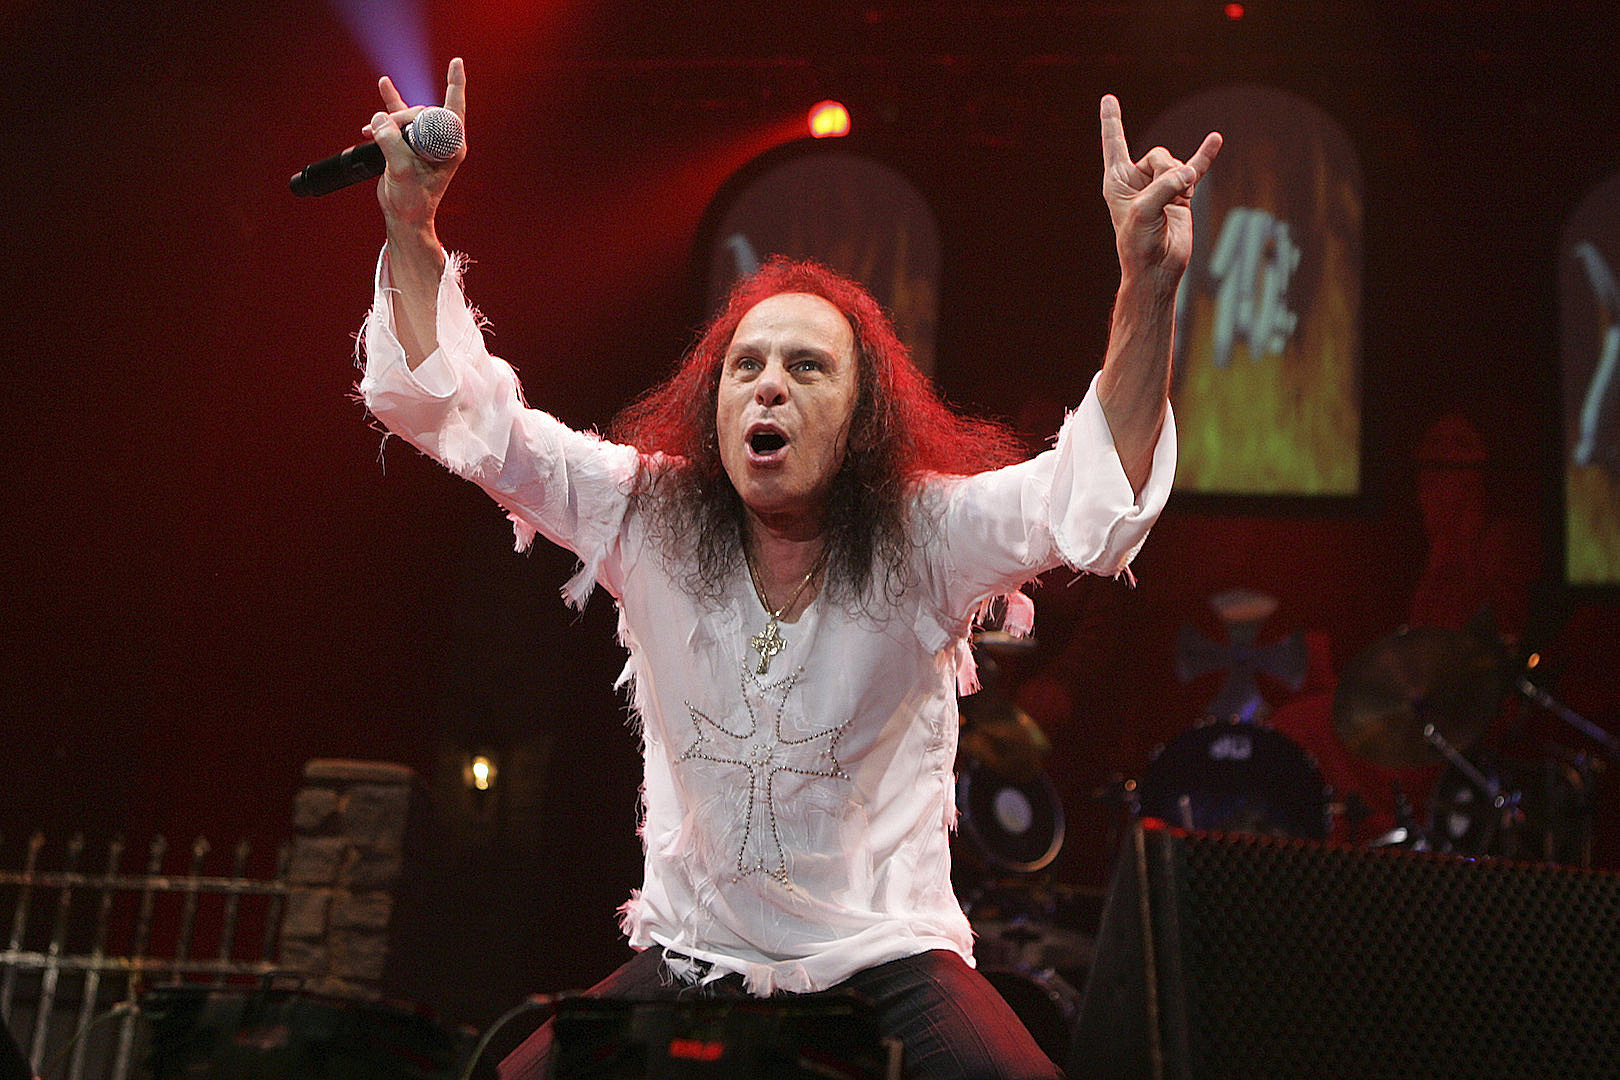 5 canciones para recordar a Ronnie James Dio - Radio Cantilo